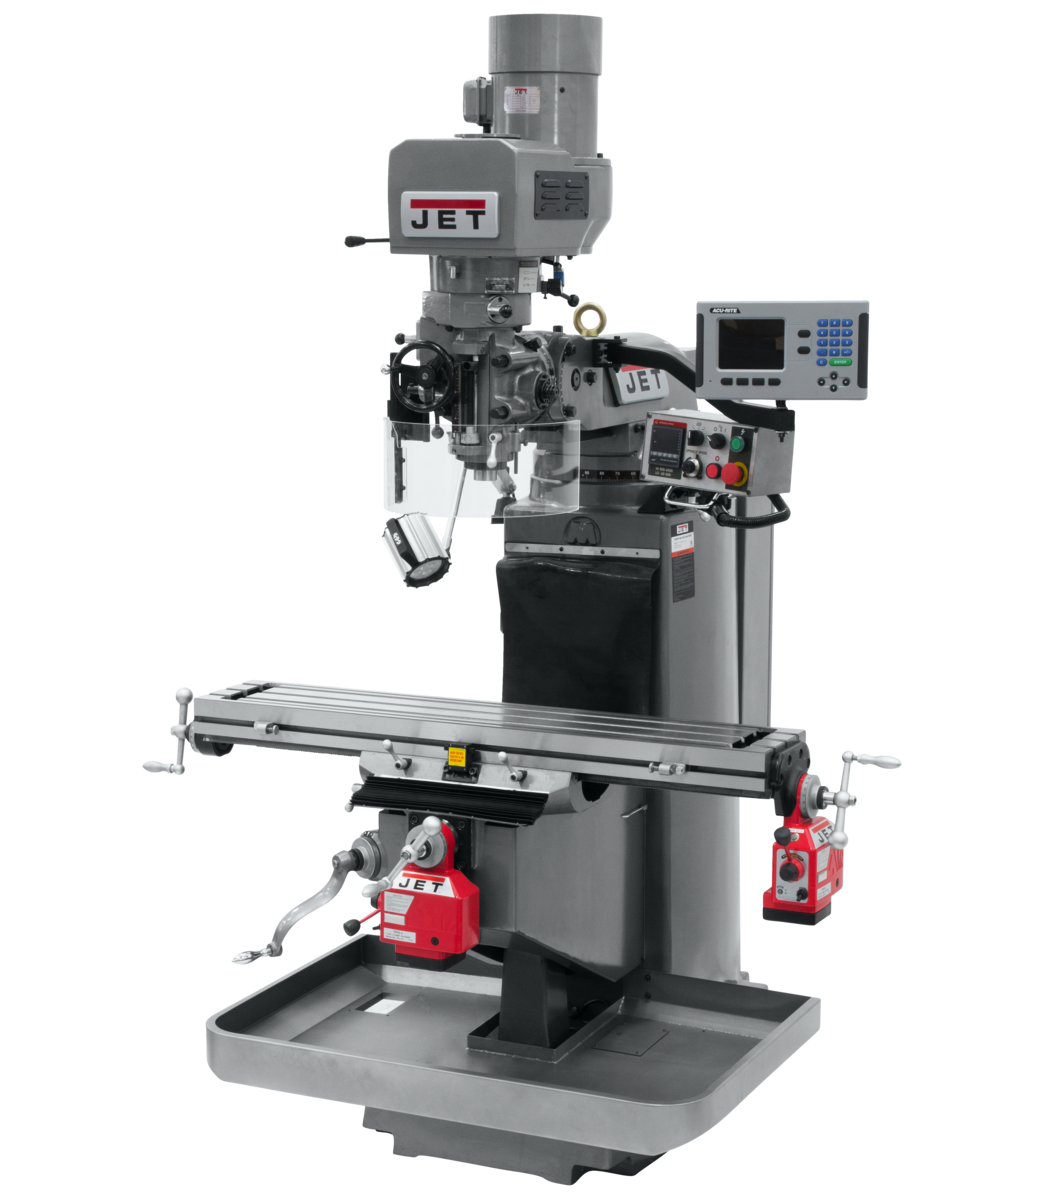 JTM-949EVS Mill With 3-Axis Acu-Rite 203 DRO (Knee) With X and Y-Axis Powerfeeds